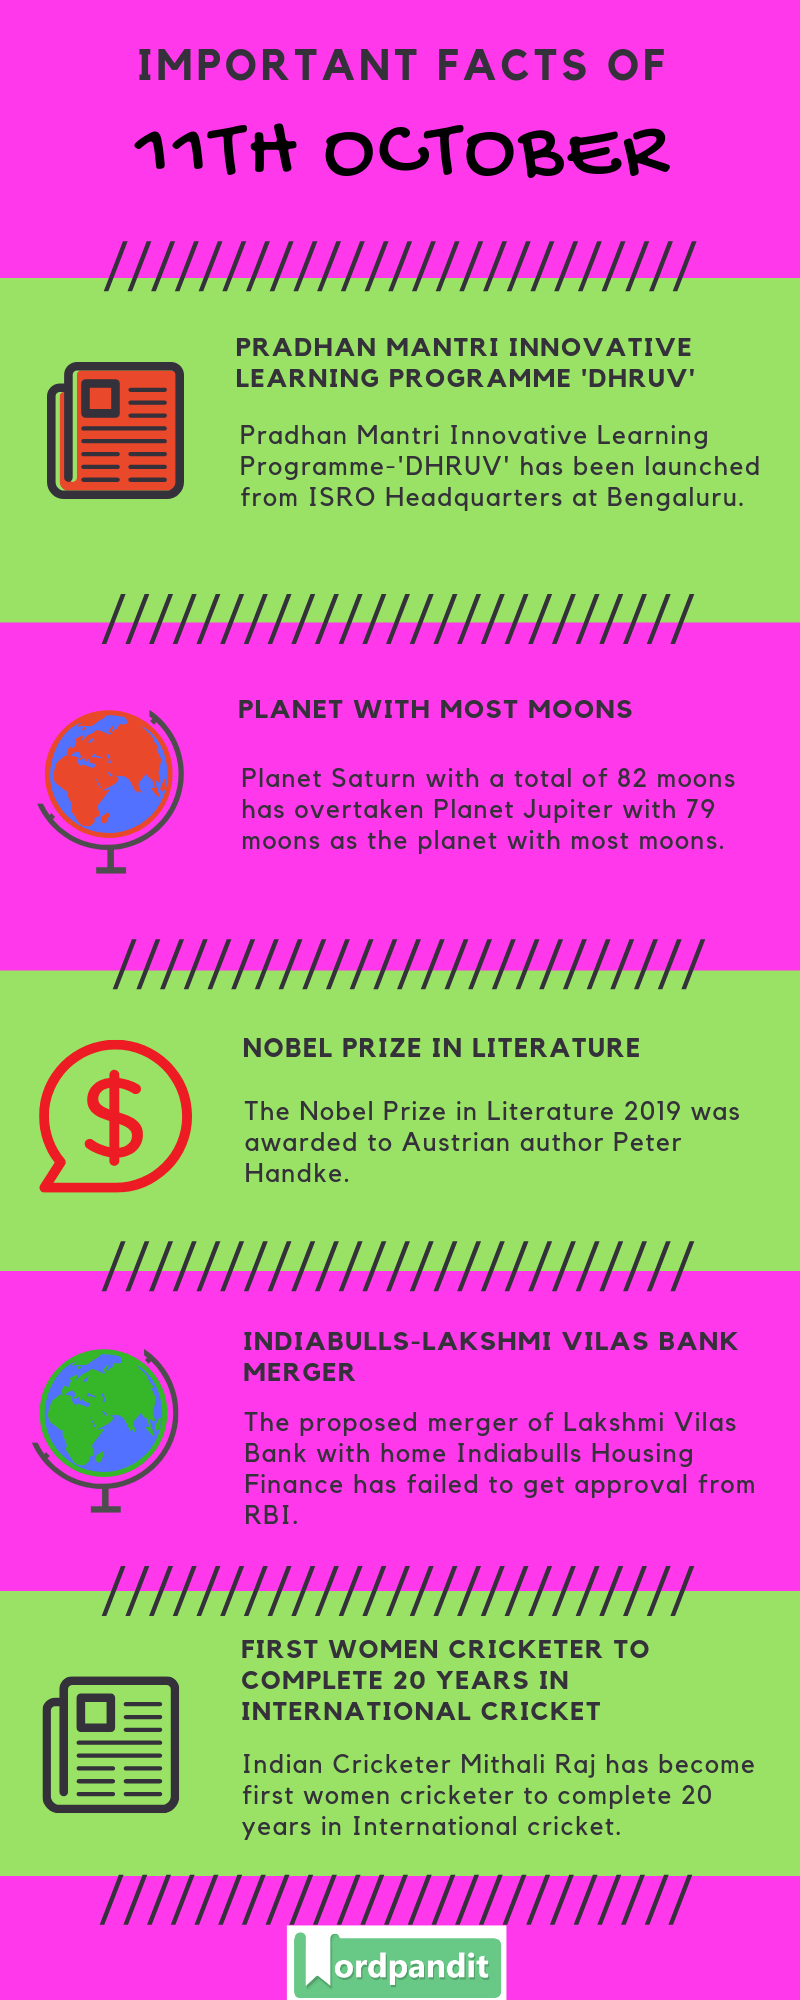 Daily Current Affairs 11 October 2019 Current Affairs Quiz 11 October 2019 Current Affairs Infographic